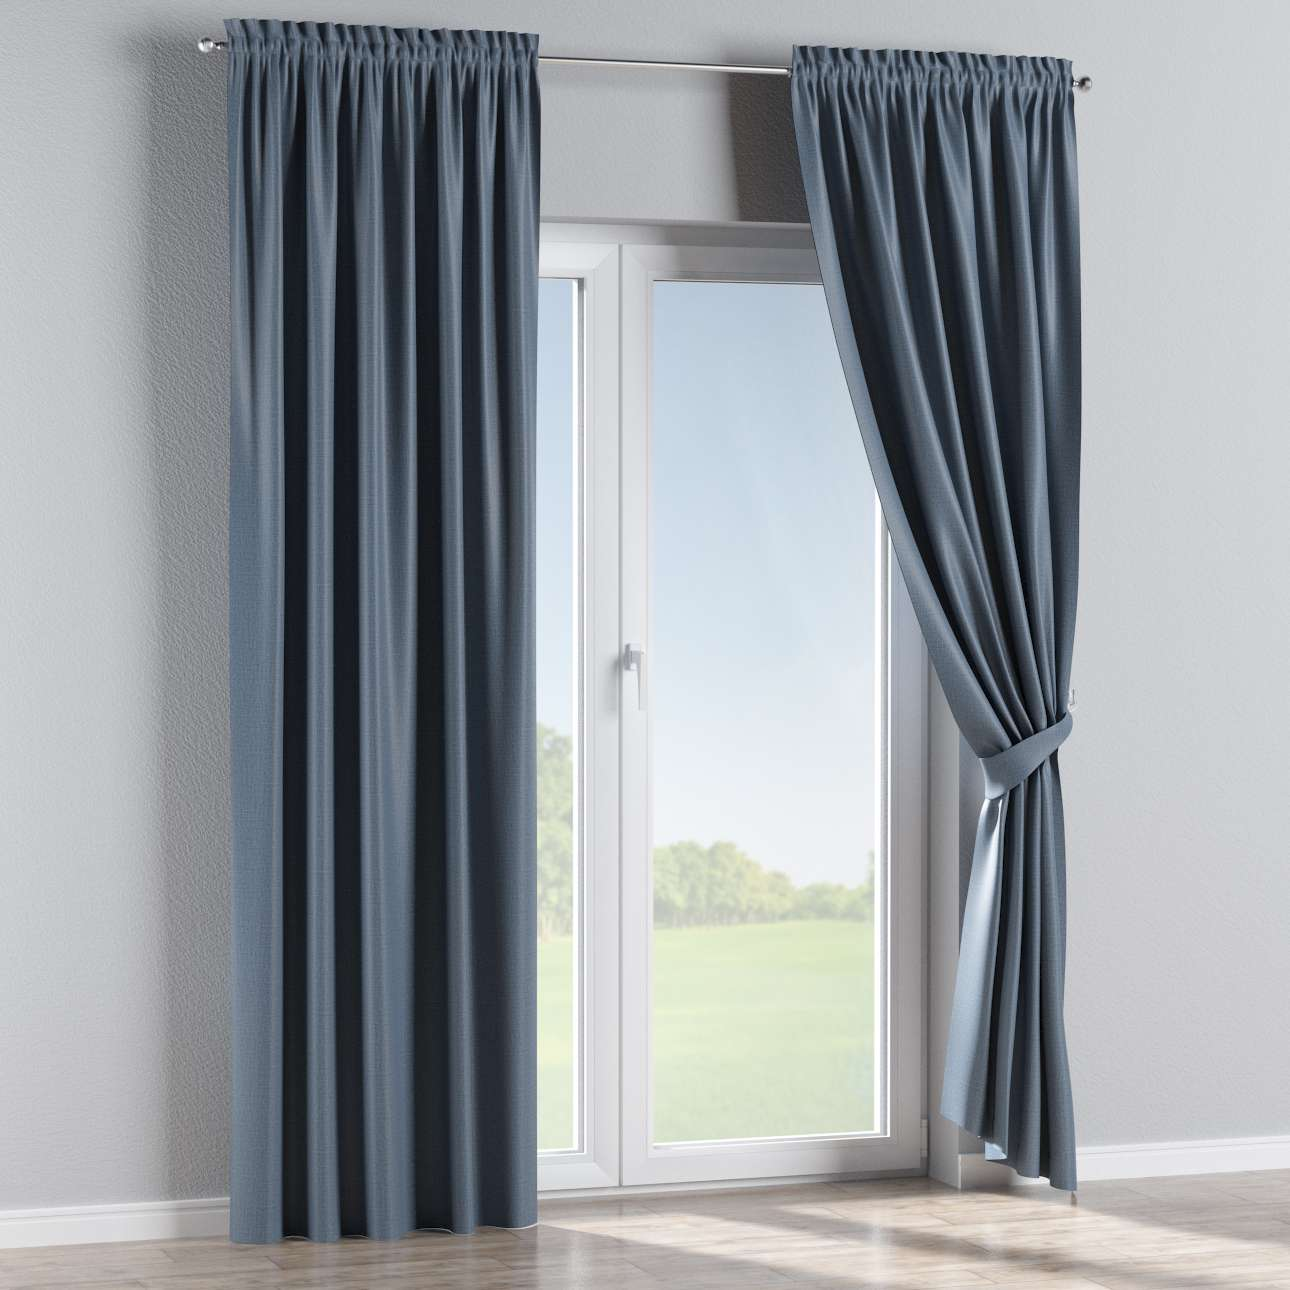 Blackout slot and frill curtains 140 x 260 cm (approx. 55 x 102 inch) in collection Blackout, fabric: 269-67